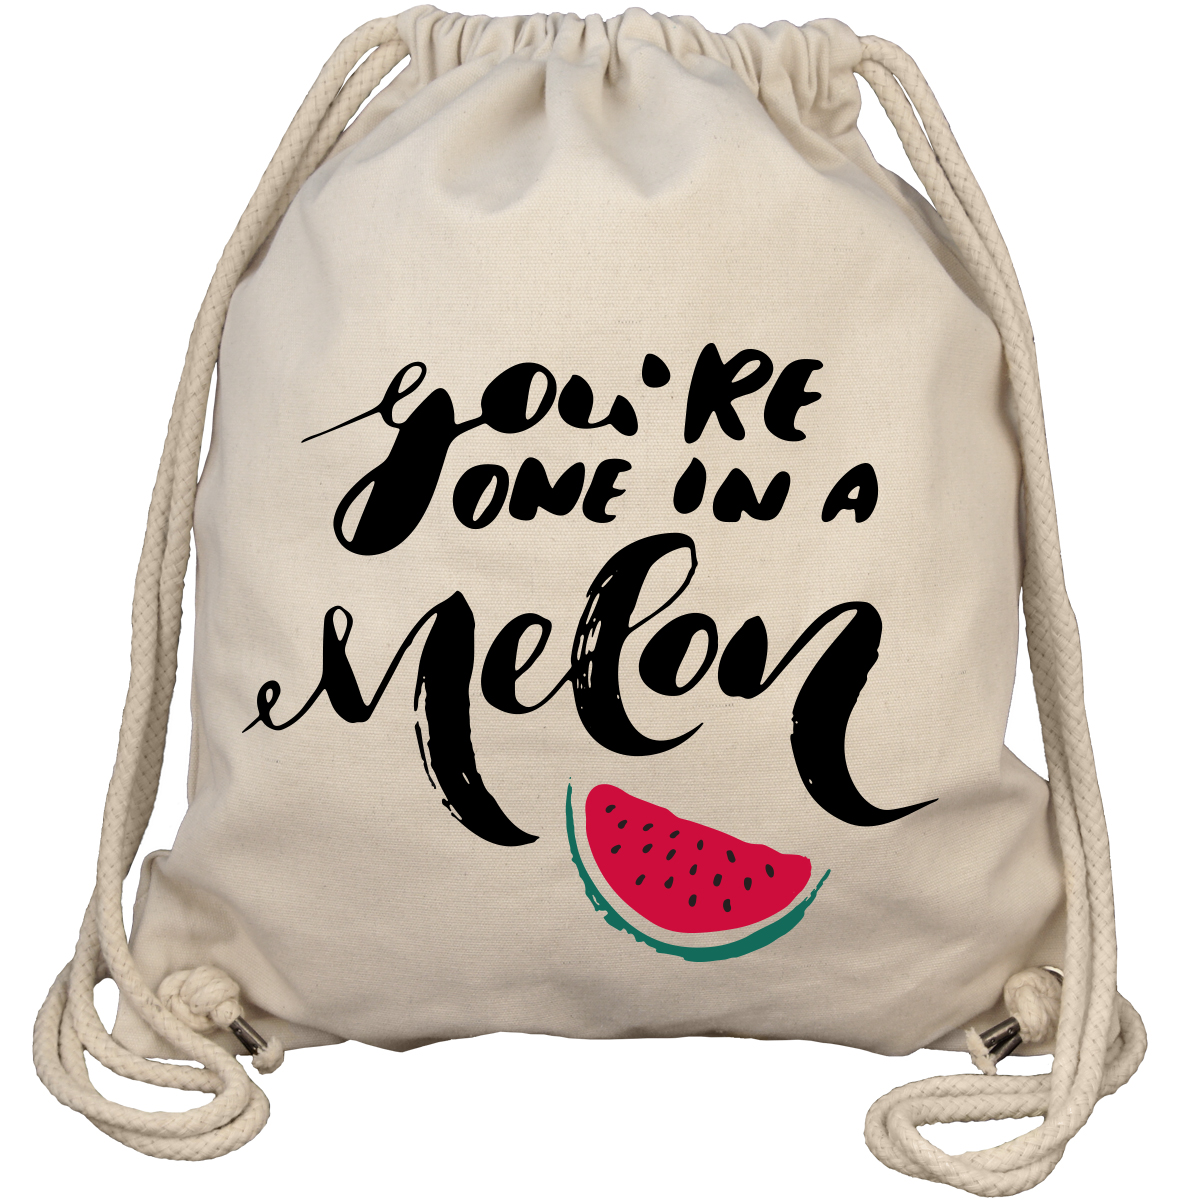 You're One In A Melon - Gym Bag Turnbeutel